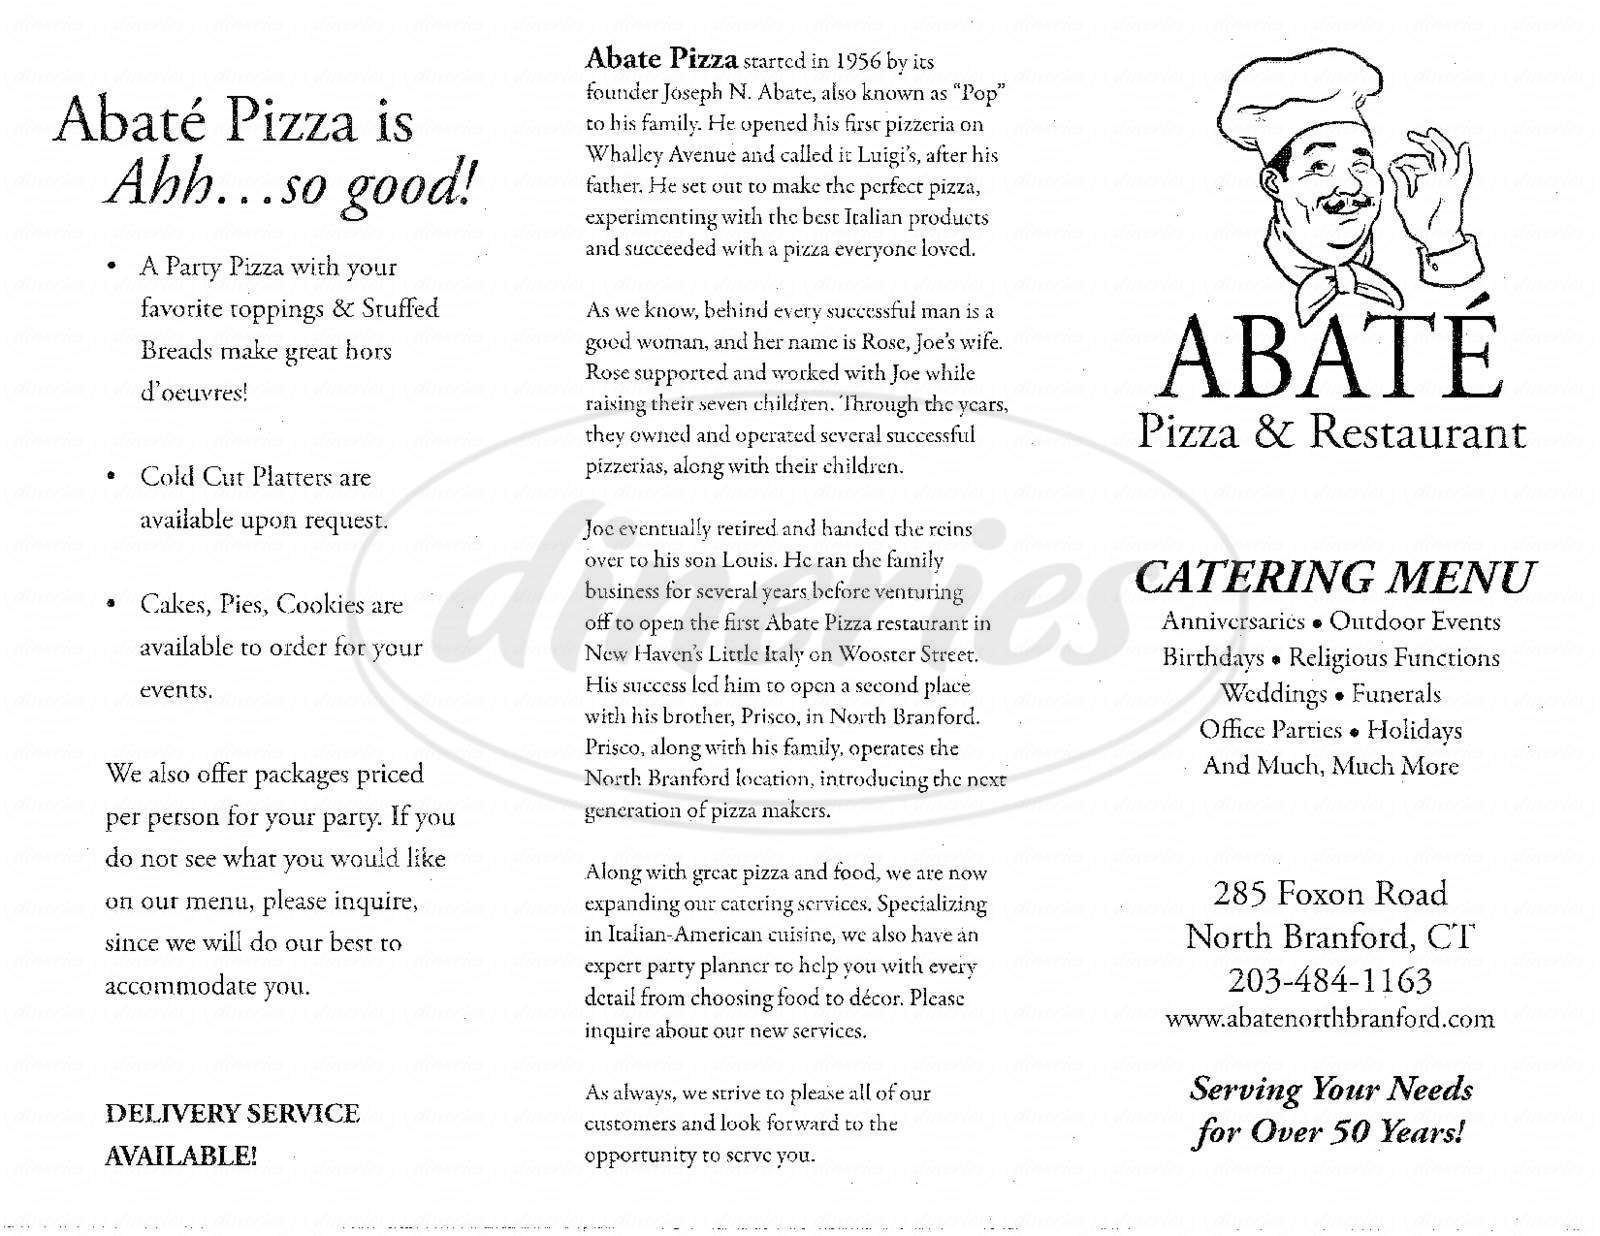 menu for Abate's Apizza & Restaurant